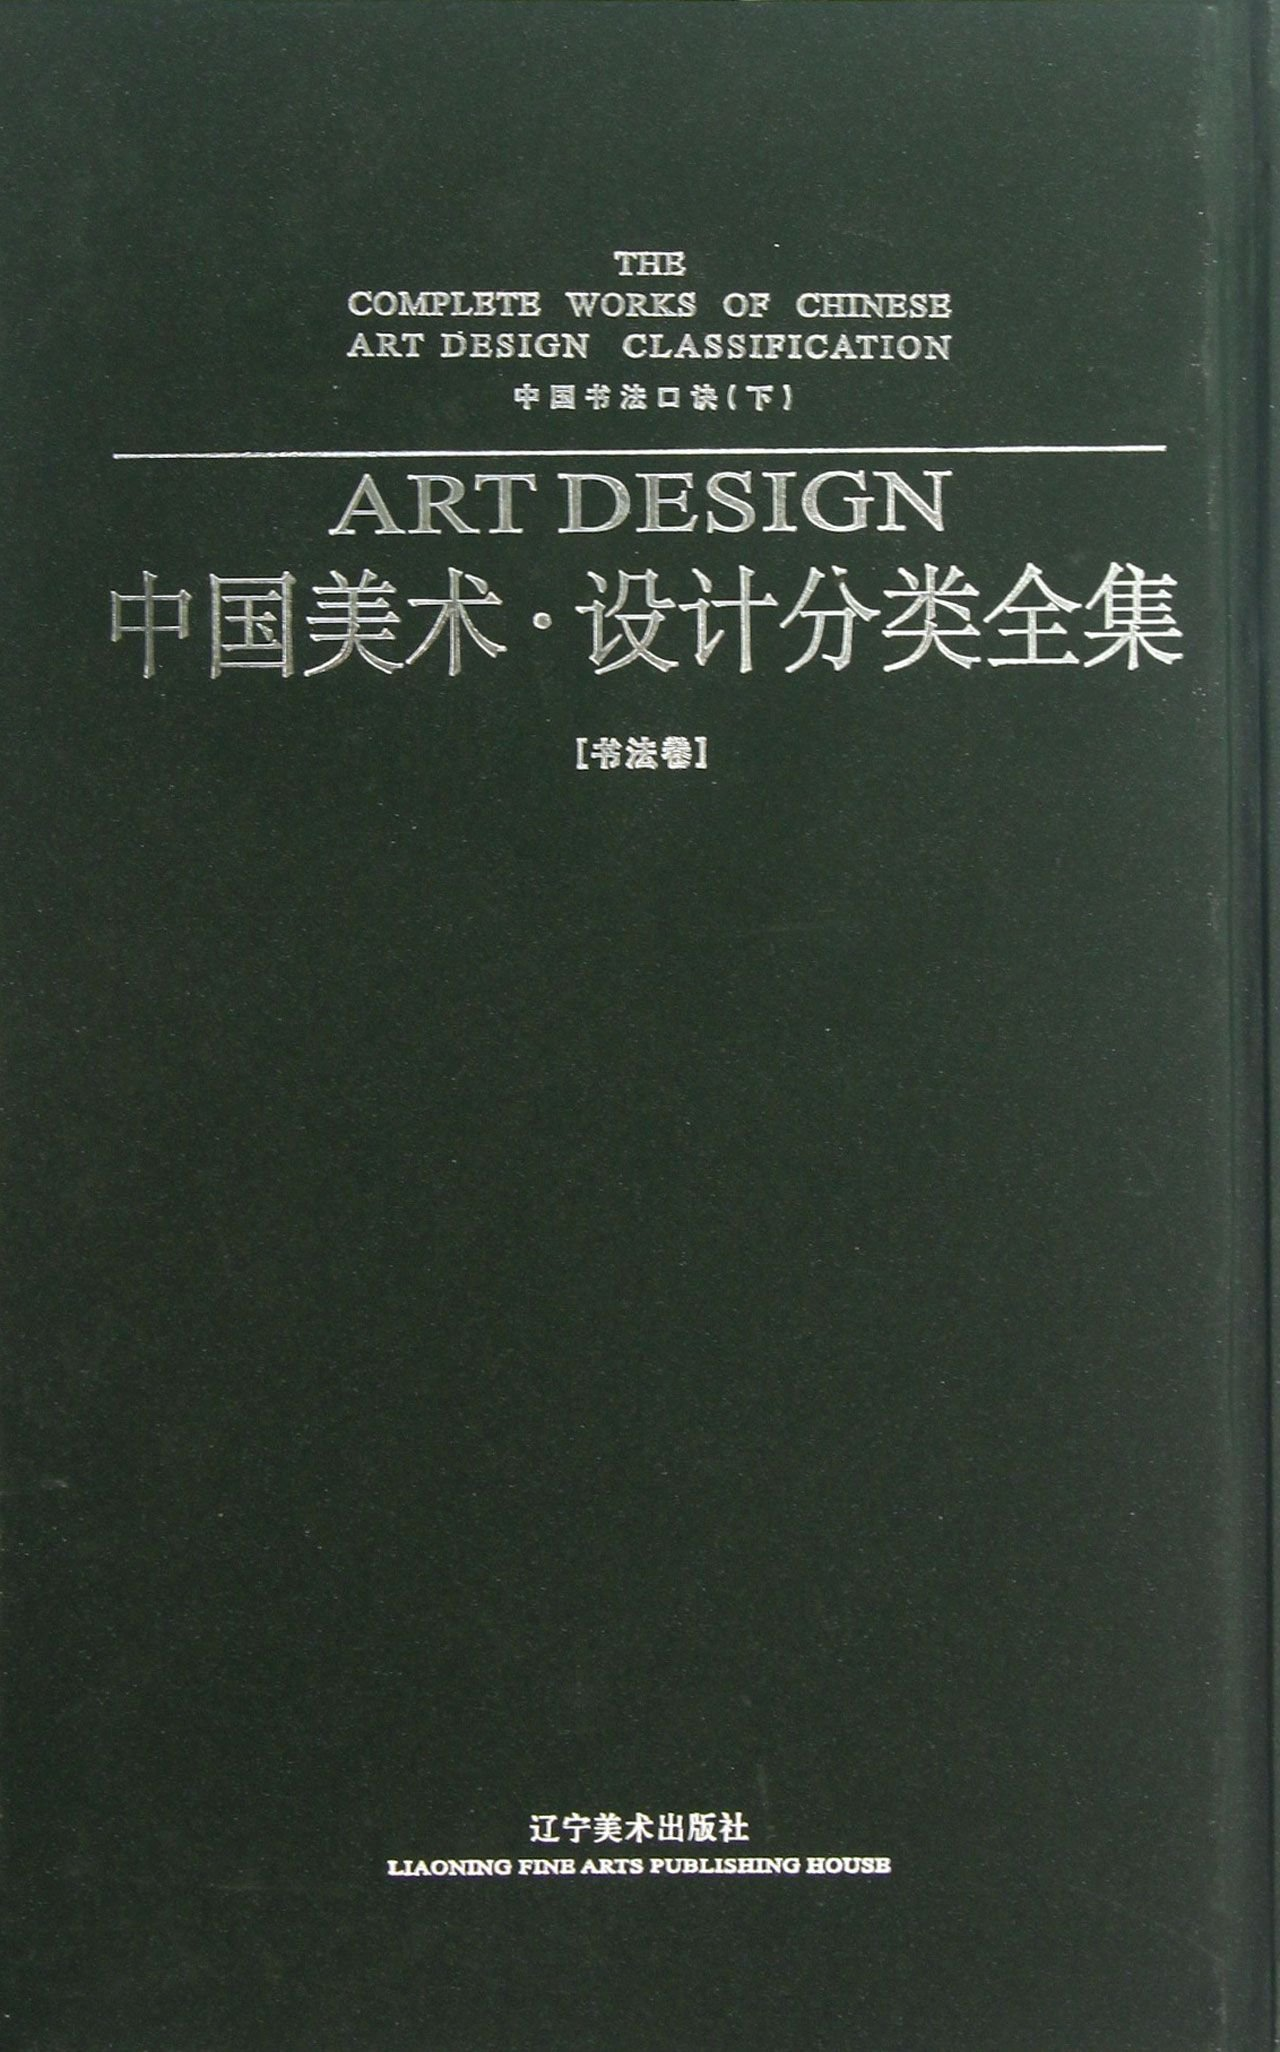 The Complete Works of Chinese Art Design Classification (Chinese Edition) ebook